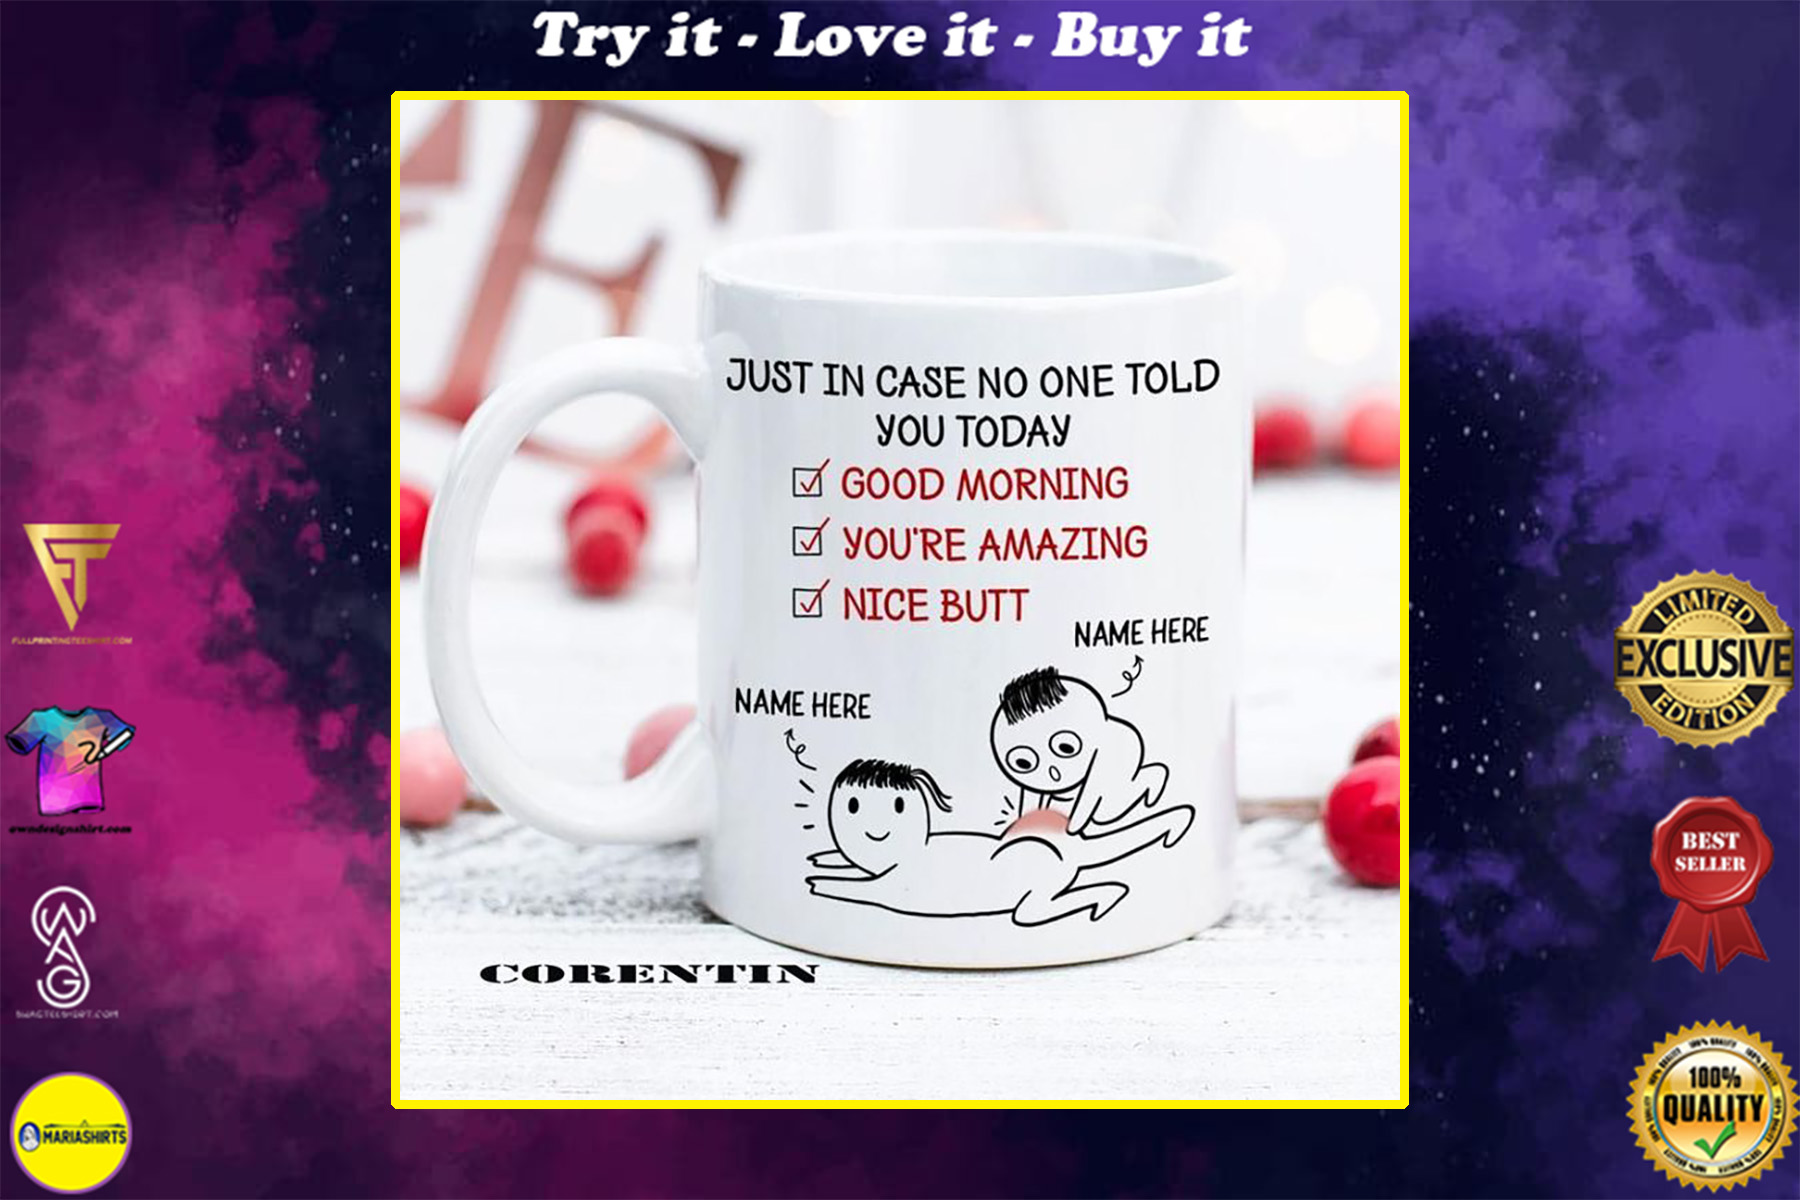 custom name just in case no one told you today happy valentine's day mug